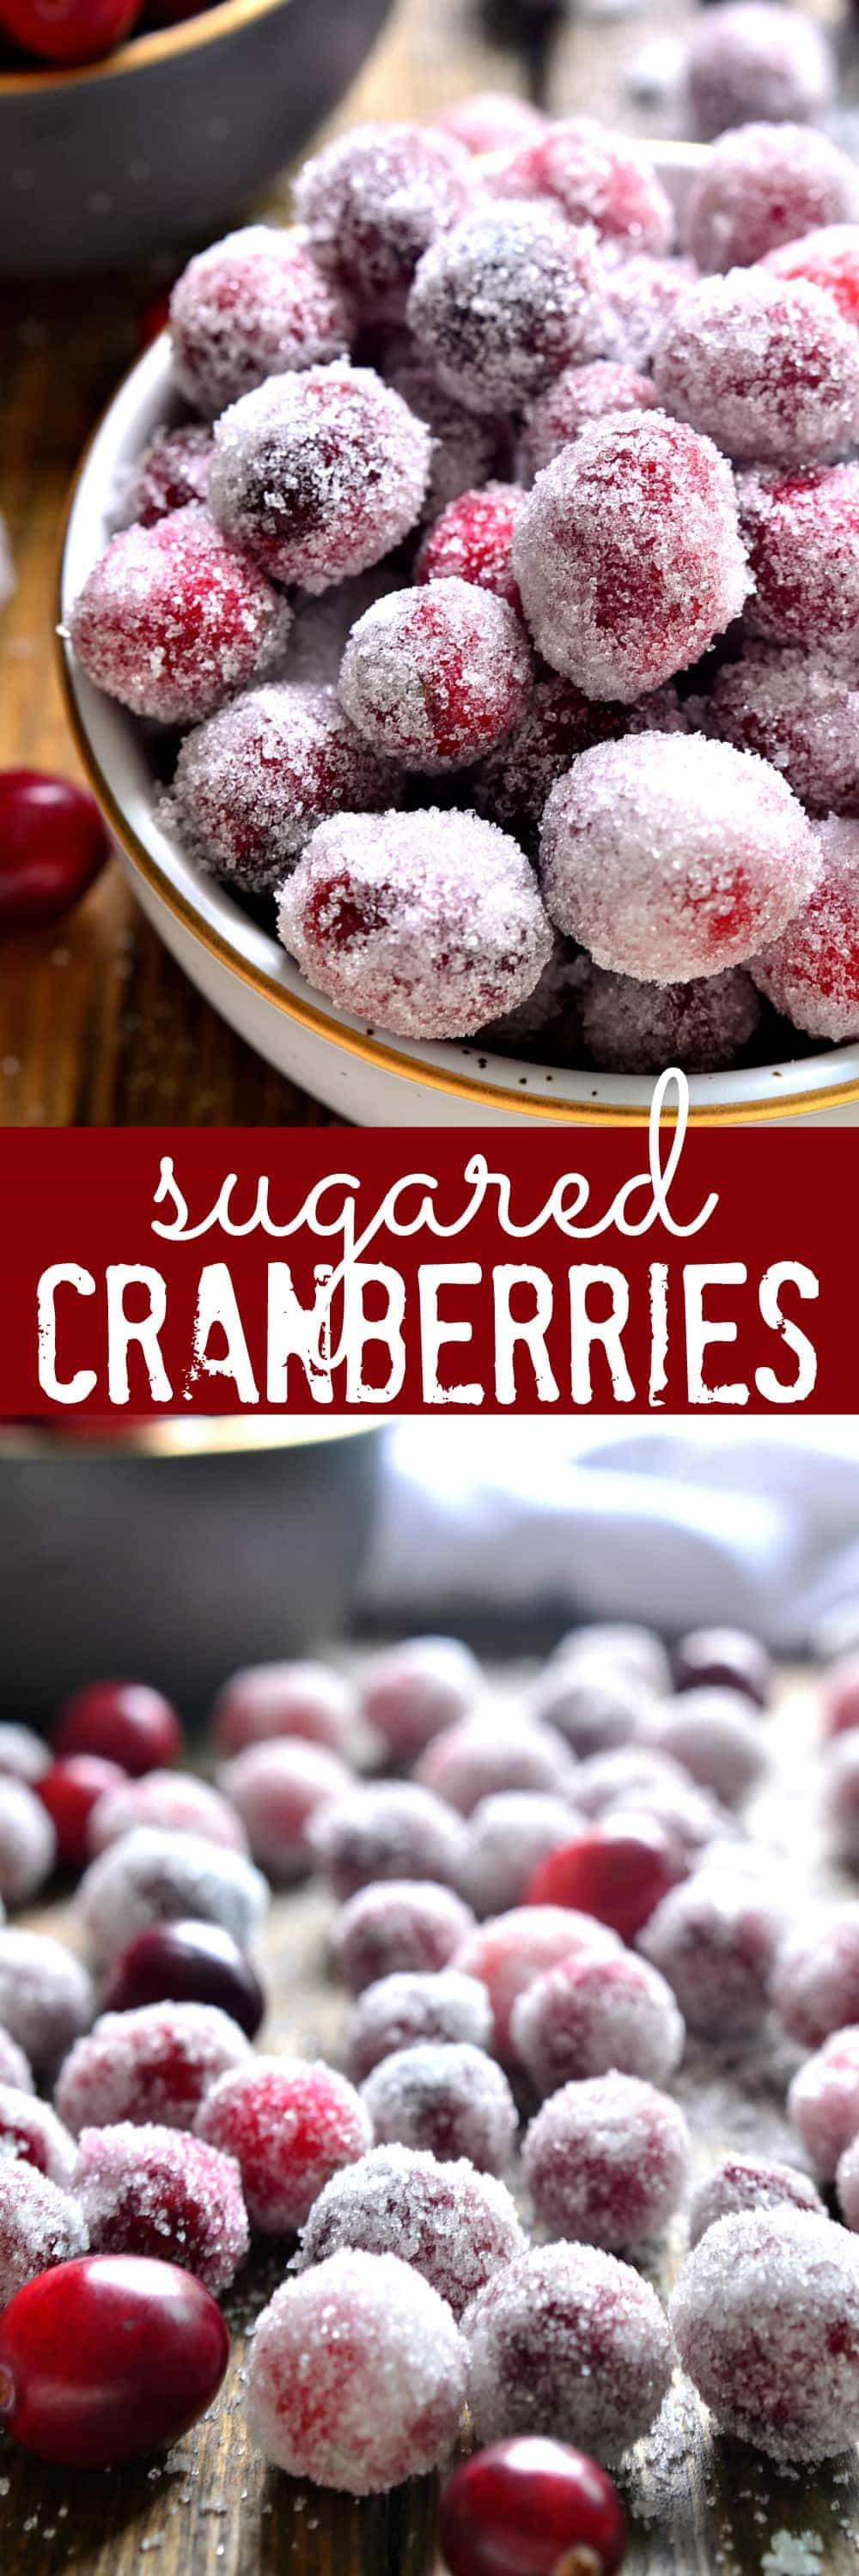 Sugared Cranberries are the ultimate holiday treat! Perfect for snacking, decorating desserts, or garnishing drinks....and they couldn't be easier to make!